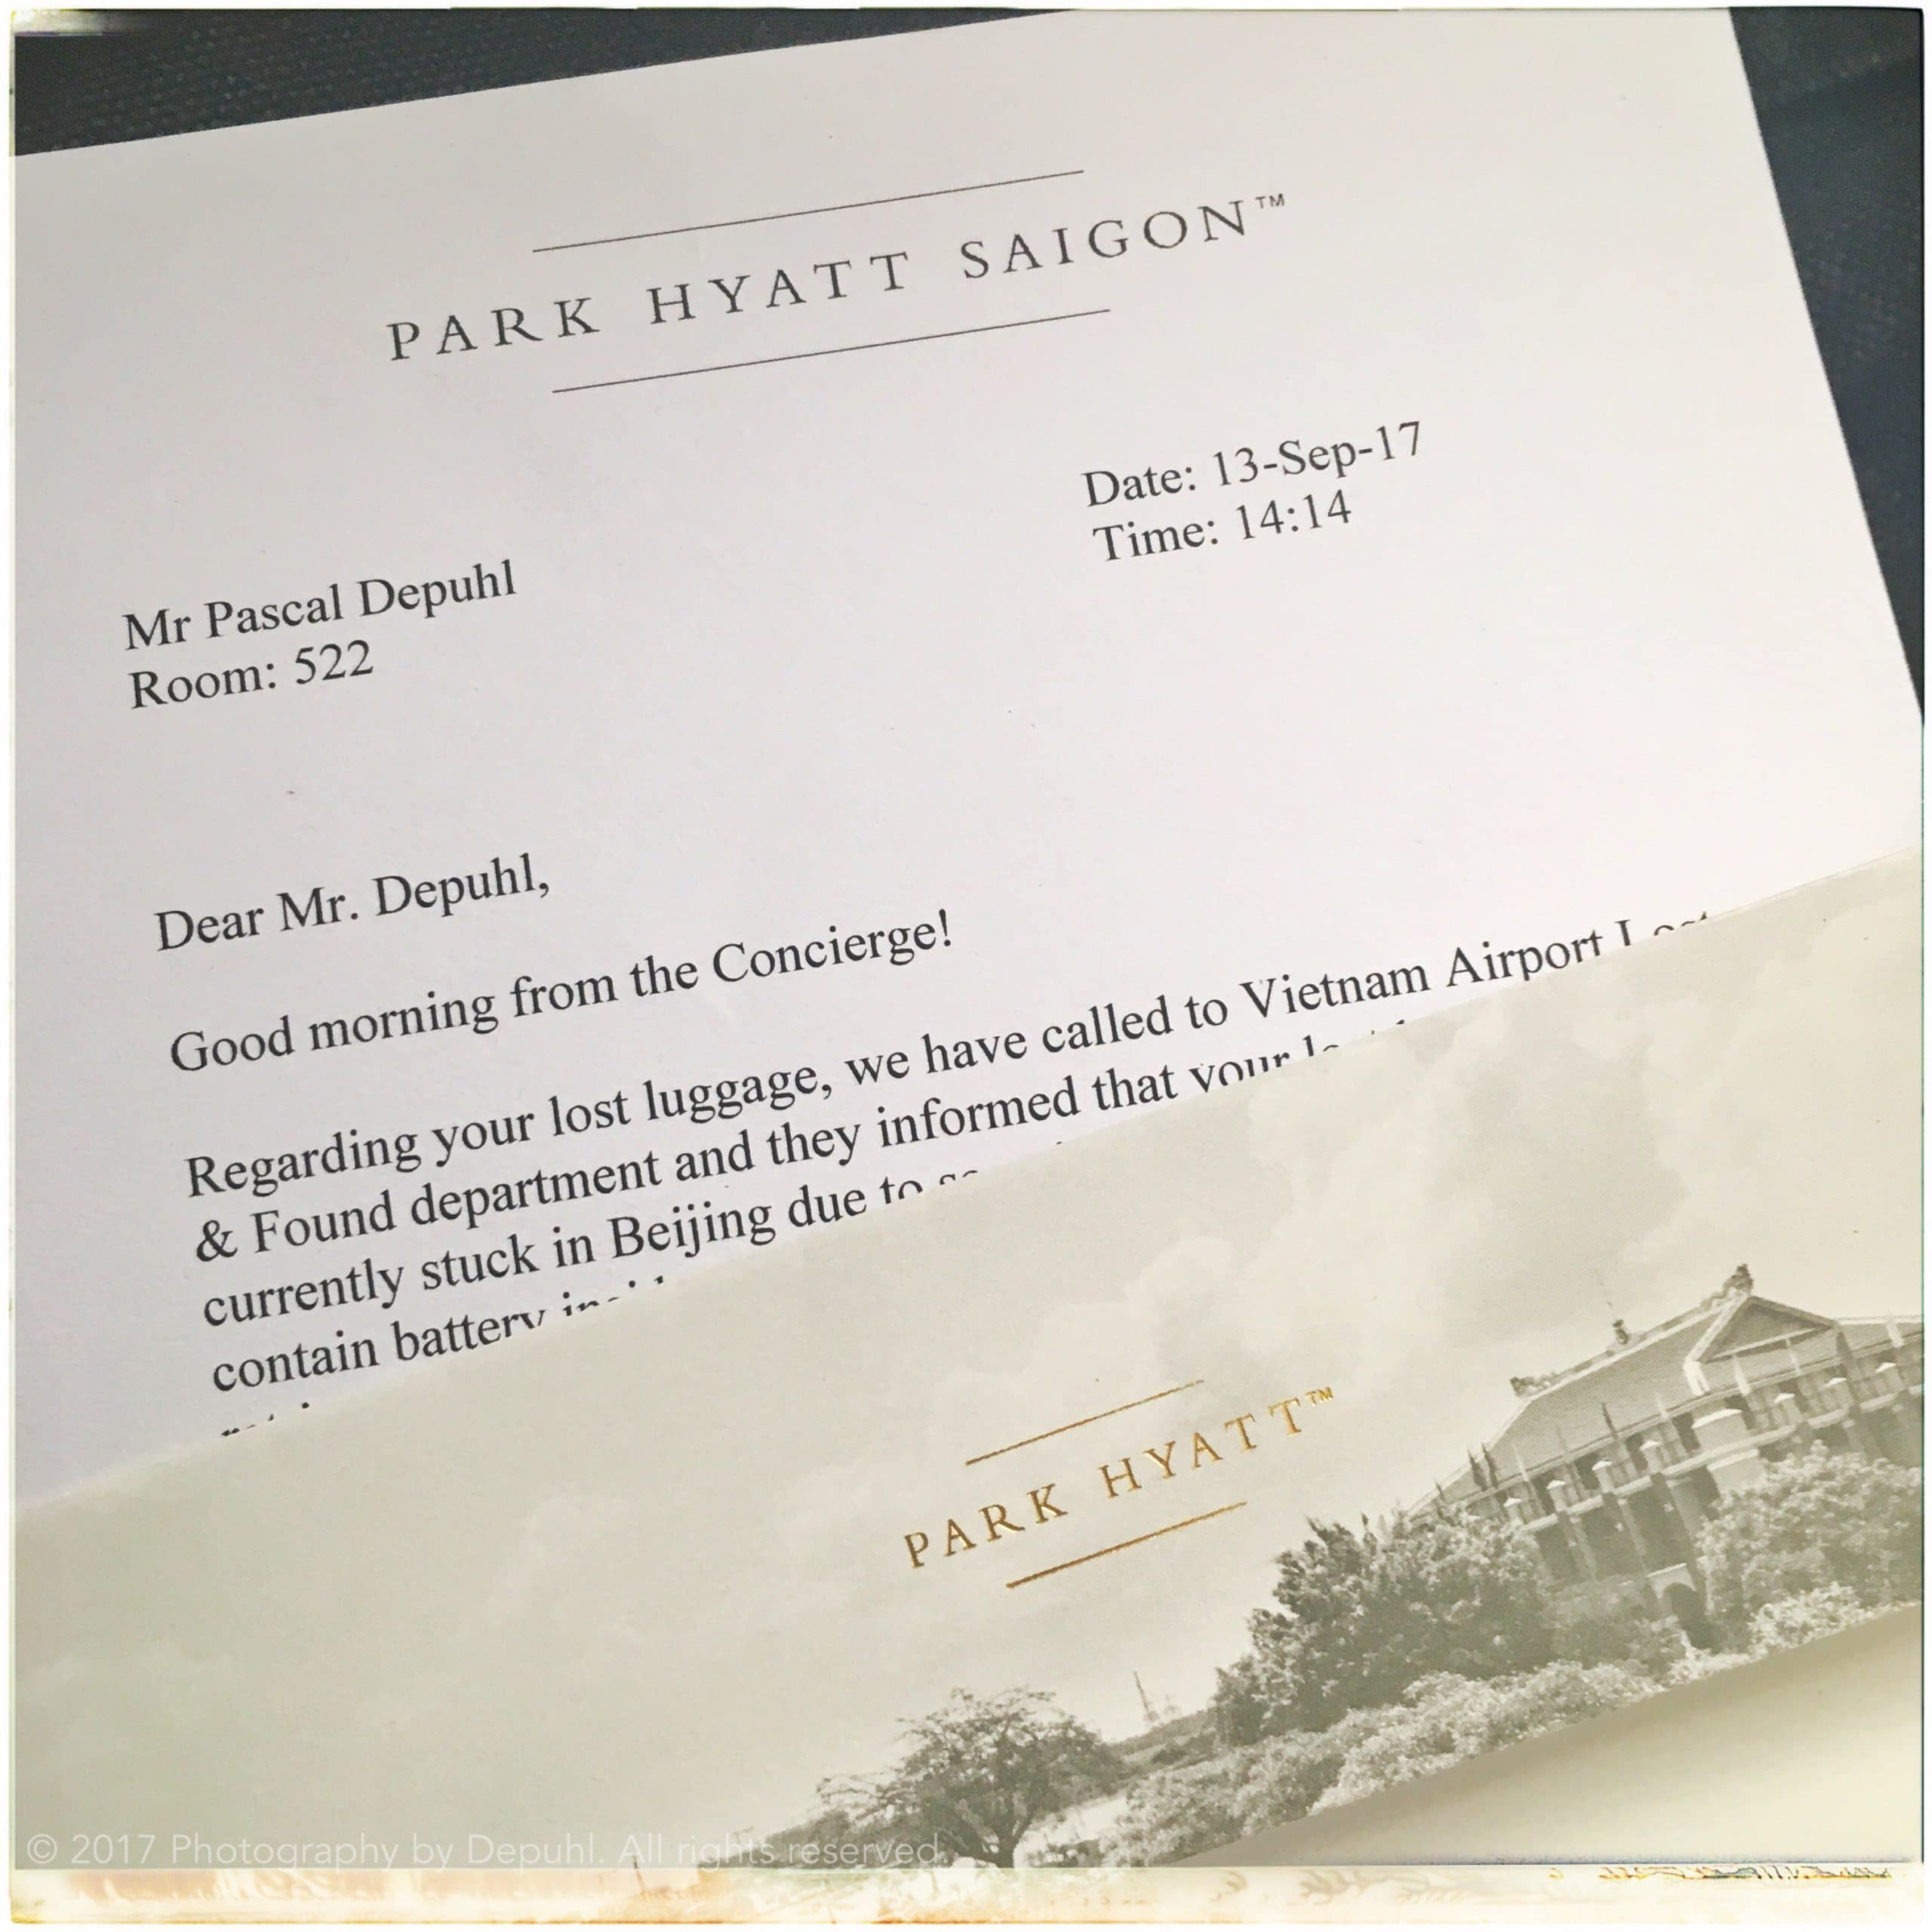 The Park Hyatt finally fixed the mistake that wasn't theirs